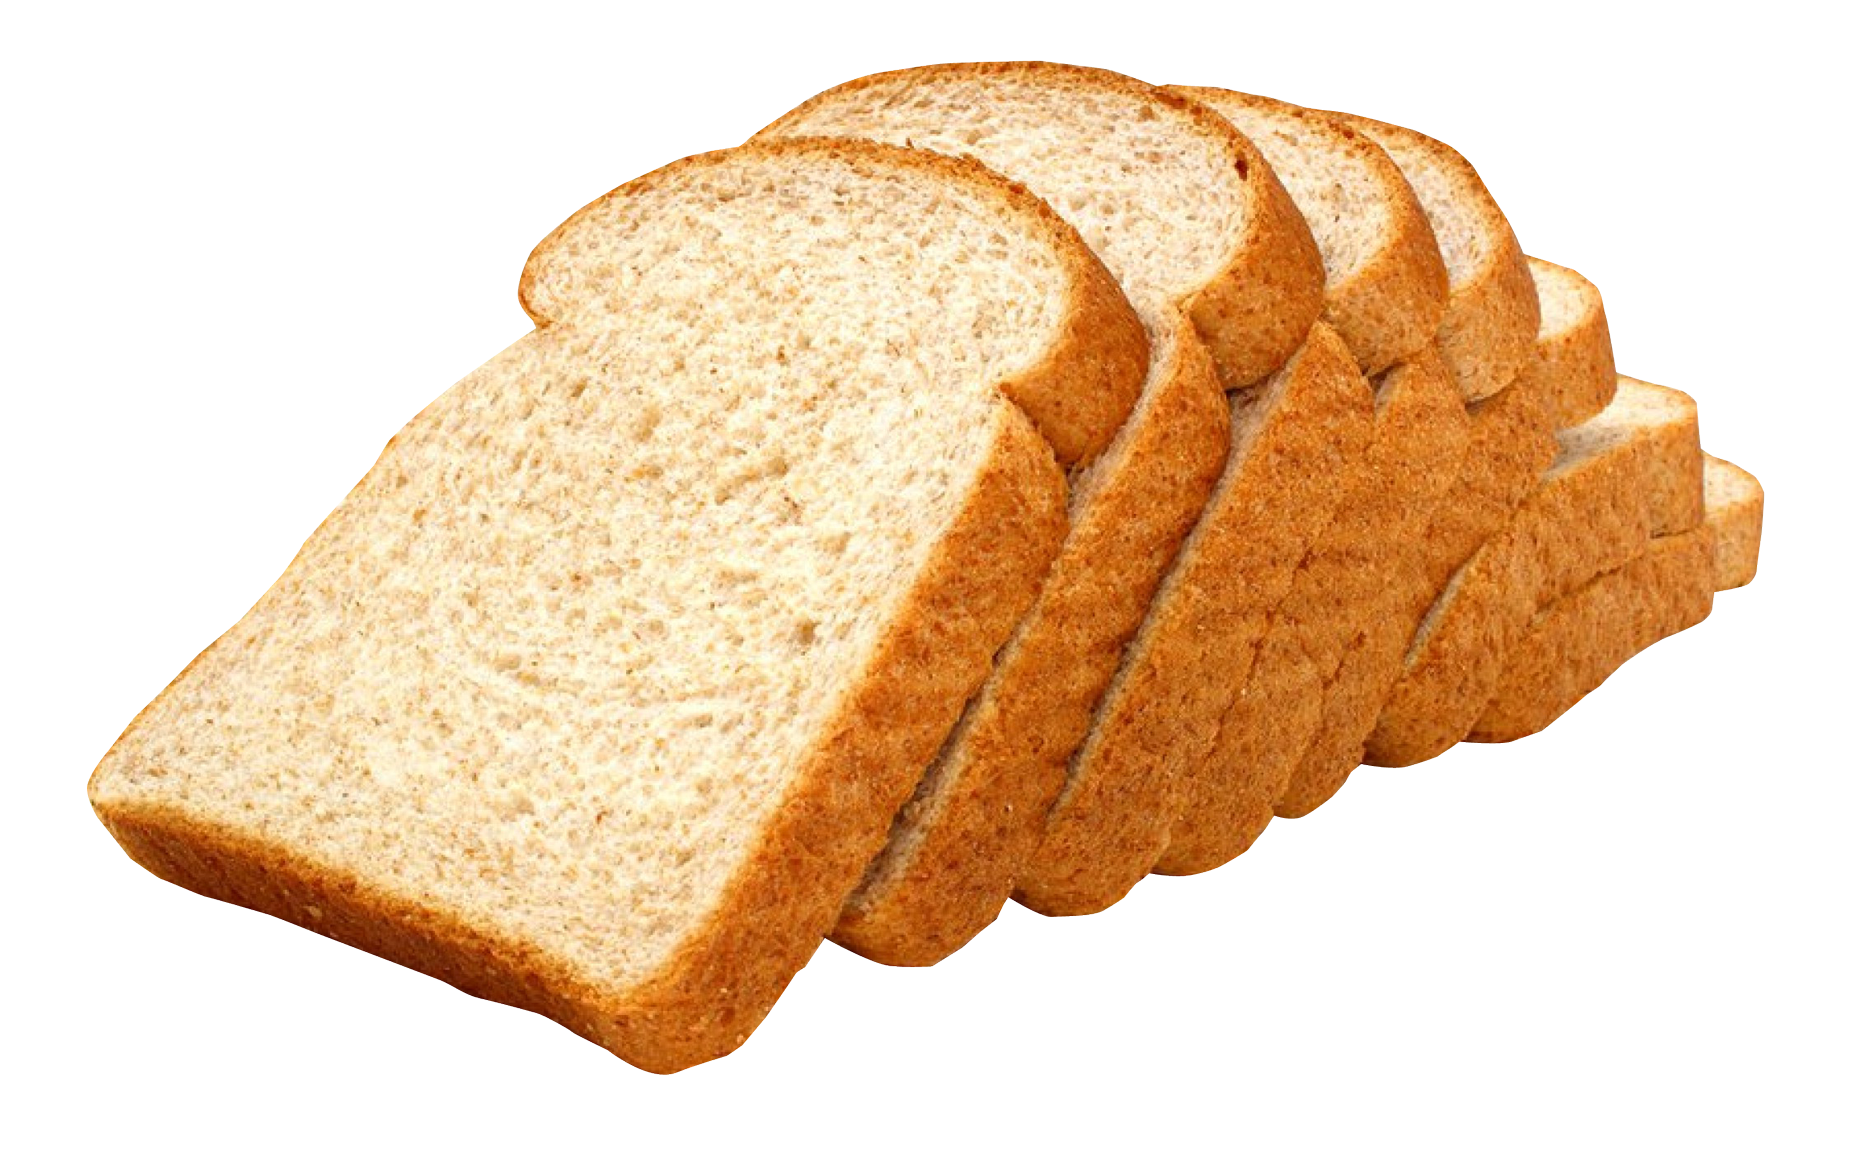 transparent download  clipart conchas for. Transparent bread toasted